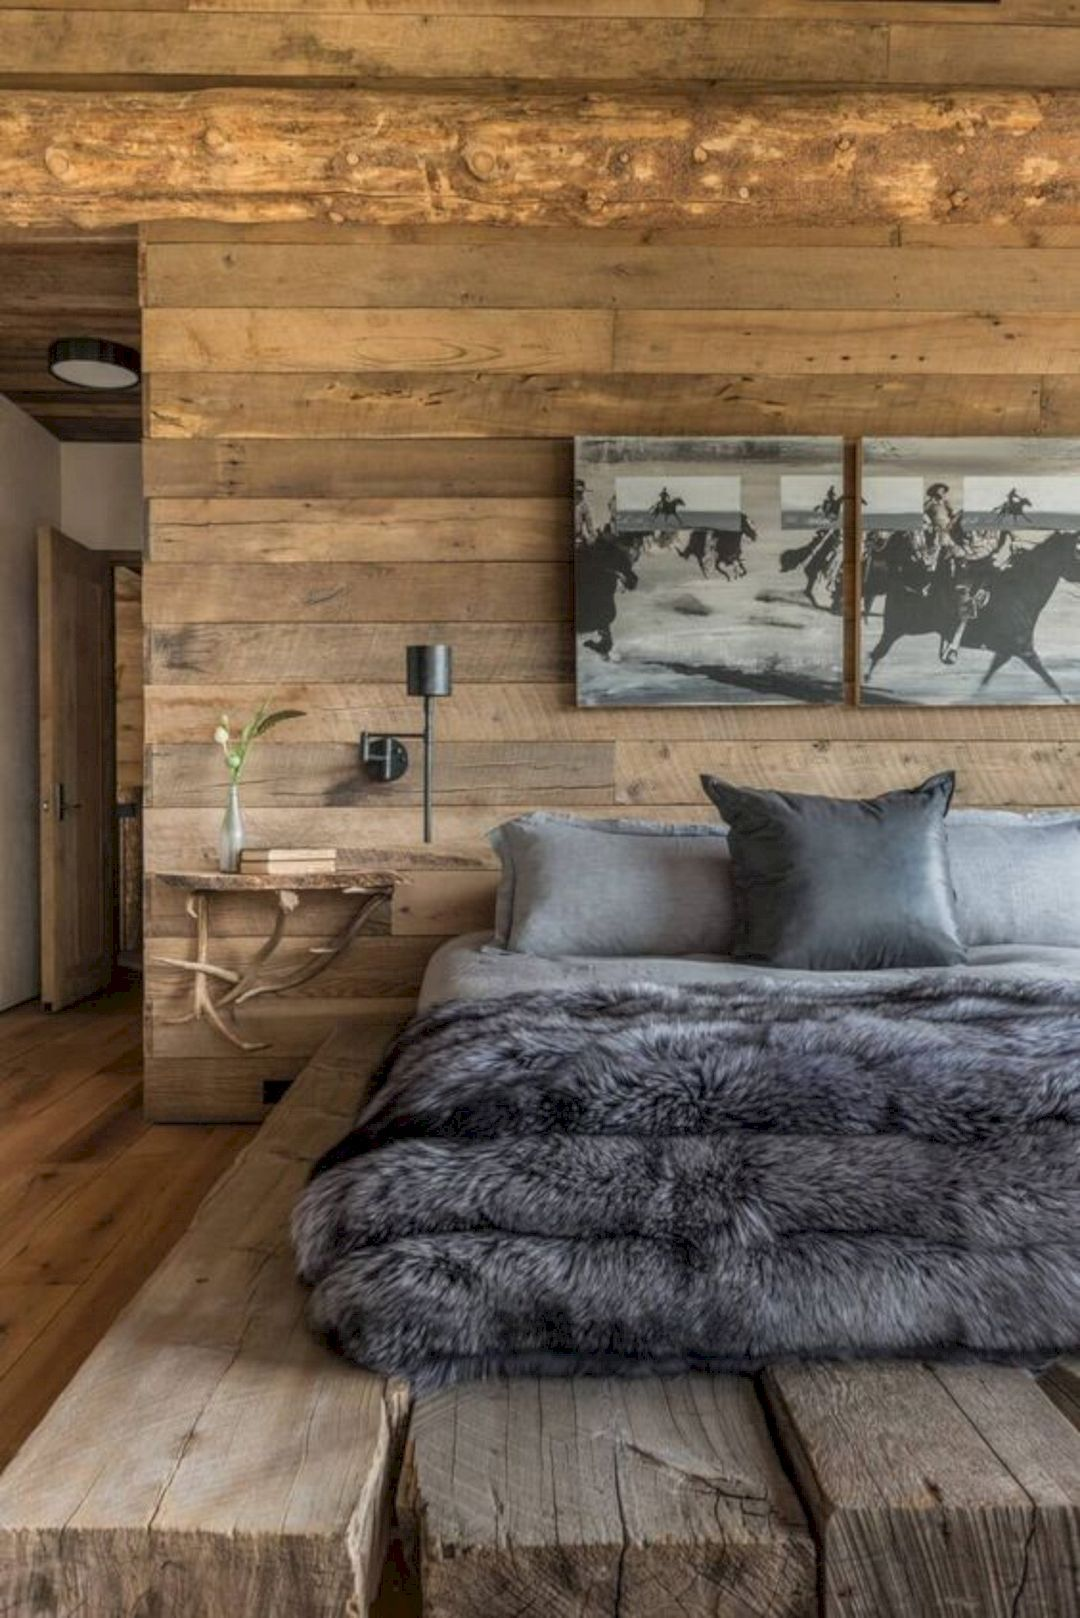 16 Ideas to Bring Out A Rustic Interior Design at